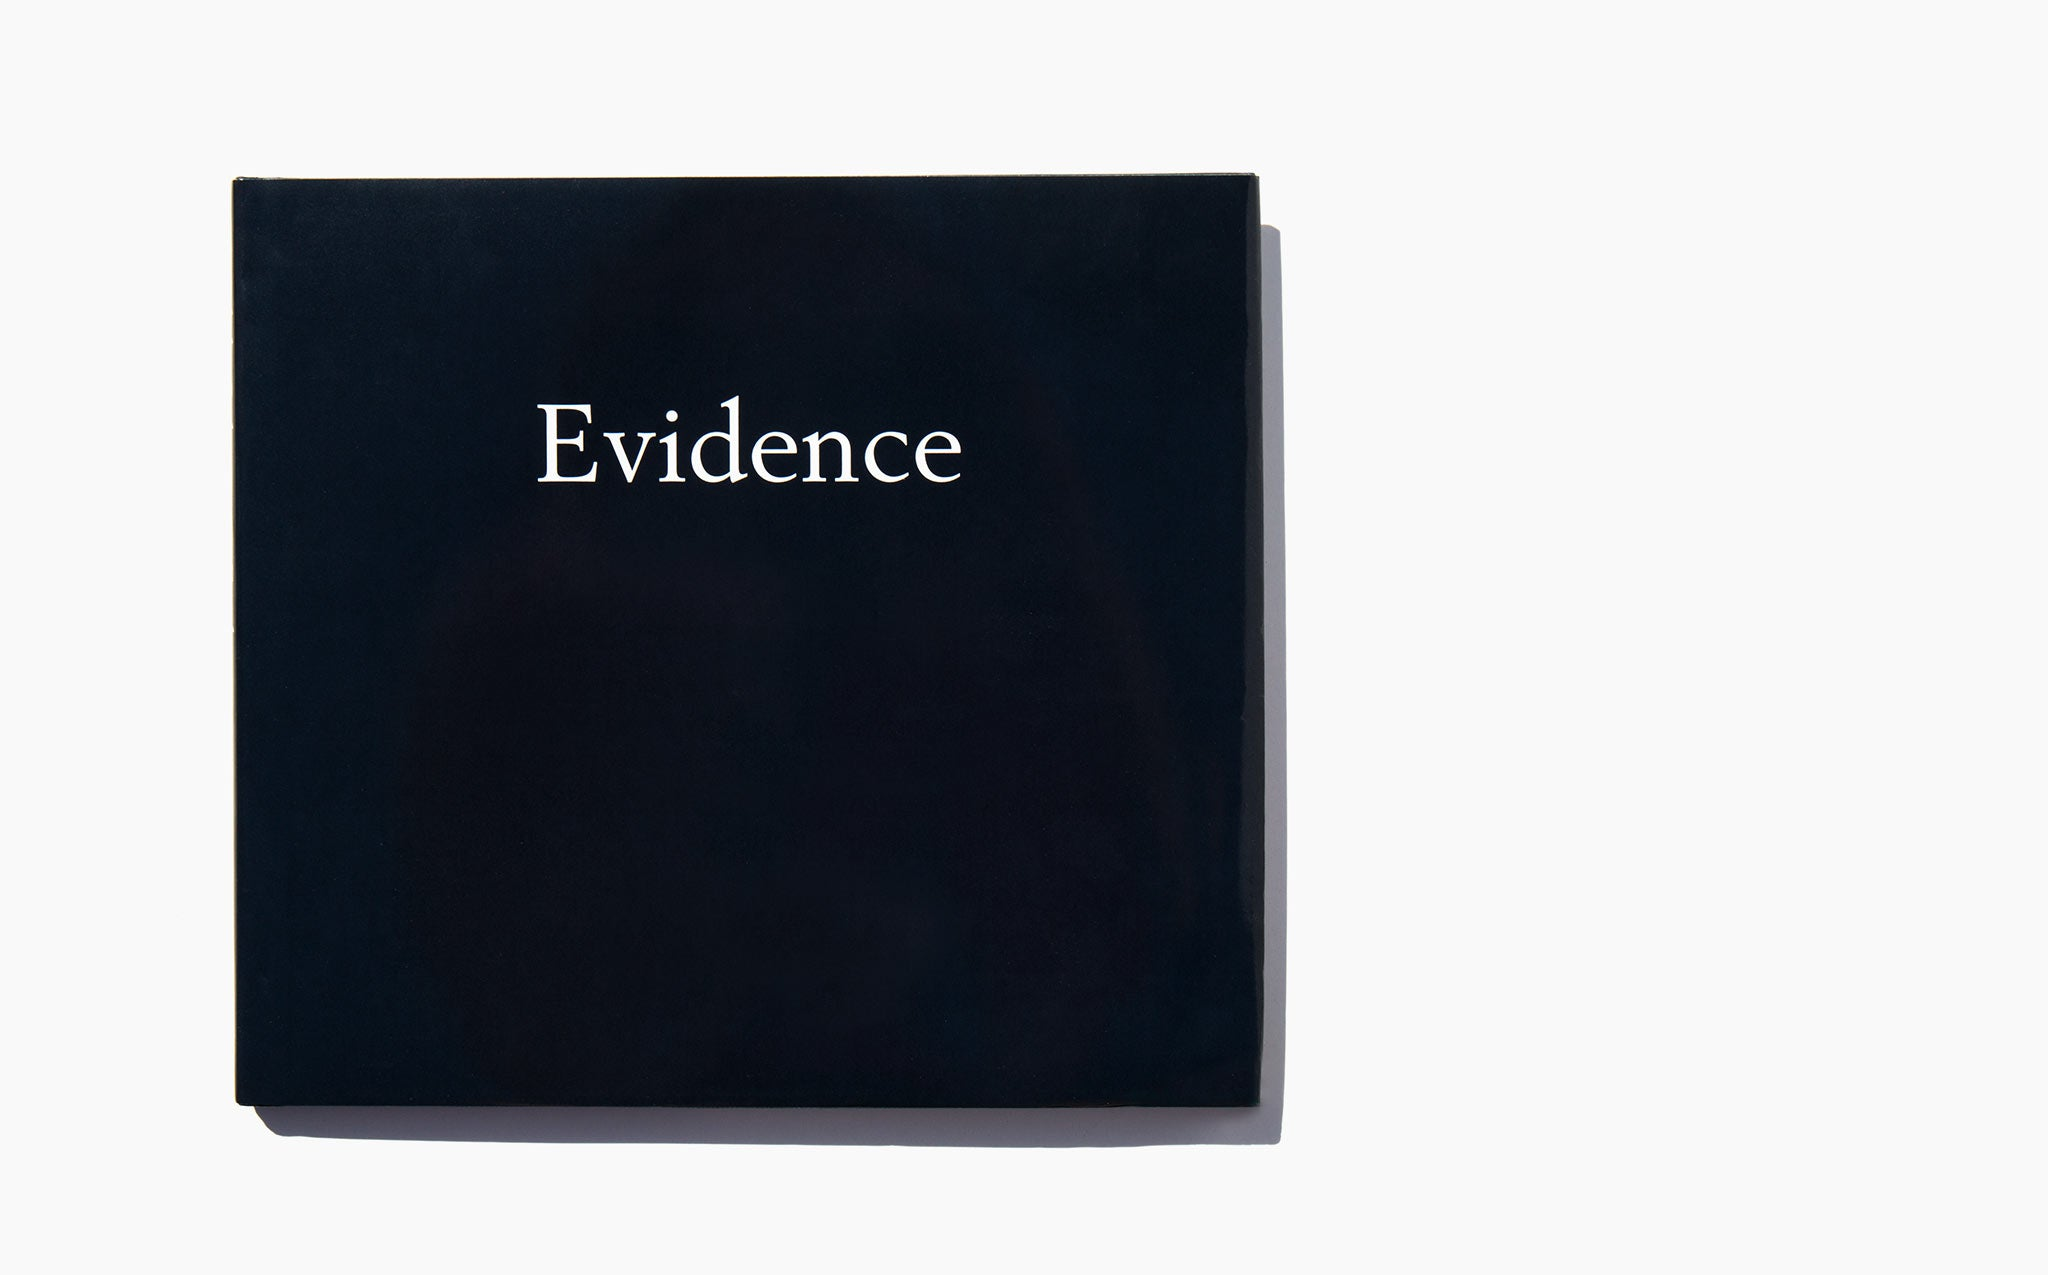 Evidence - Larry Sultan and Mike Mandel